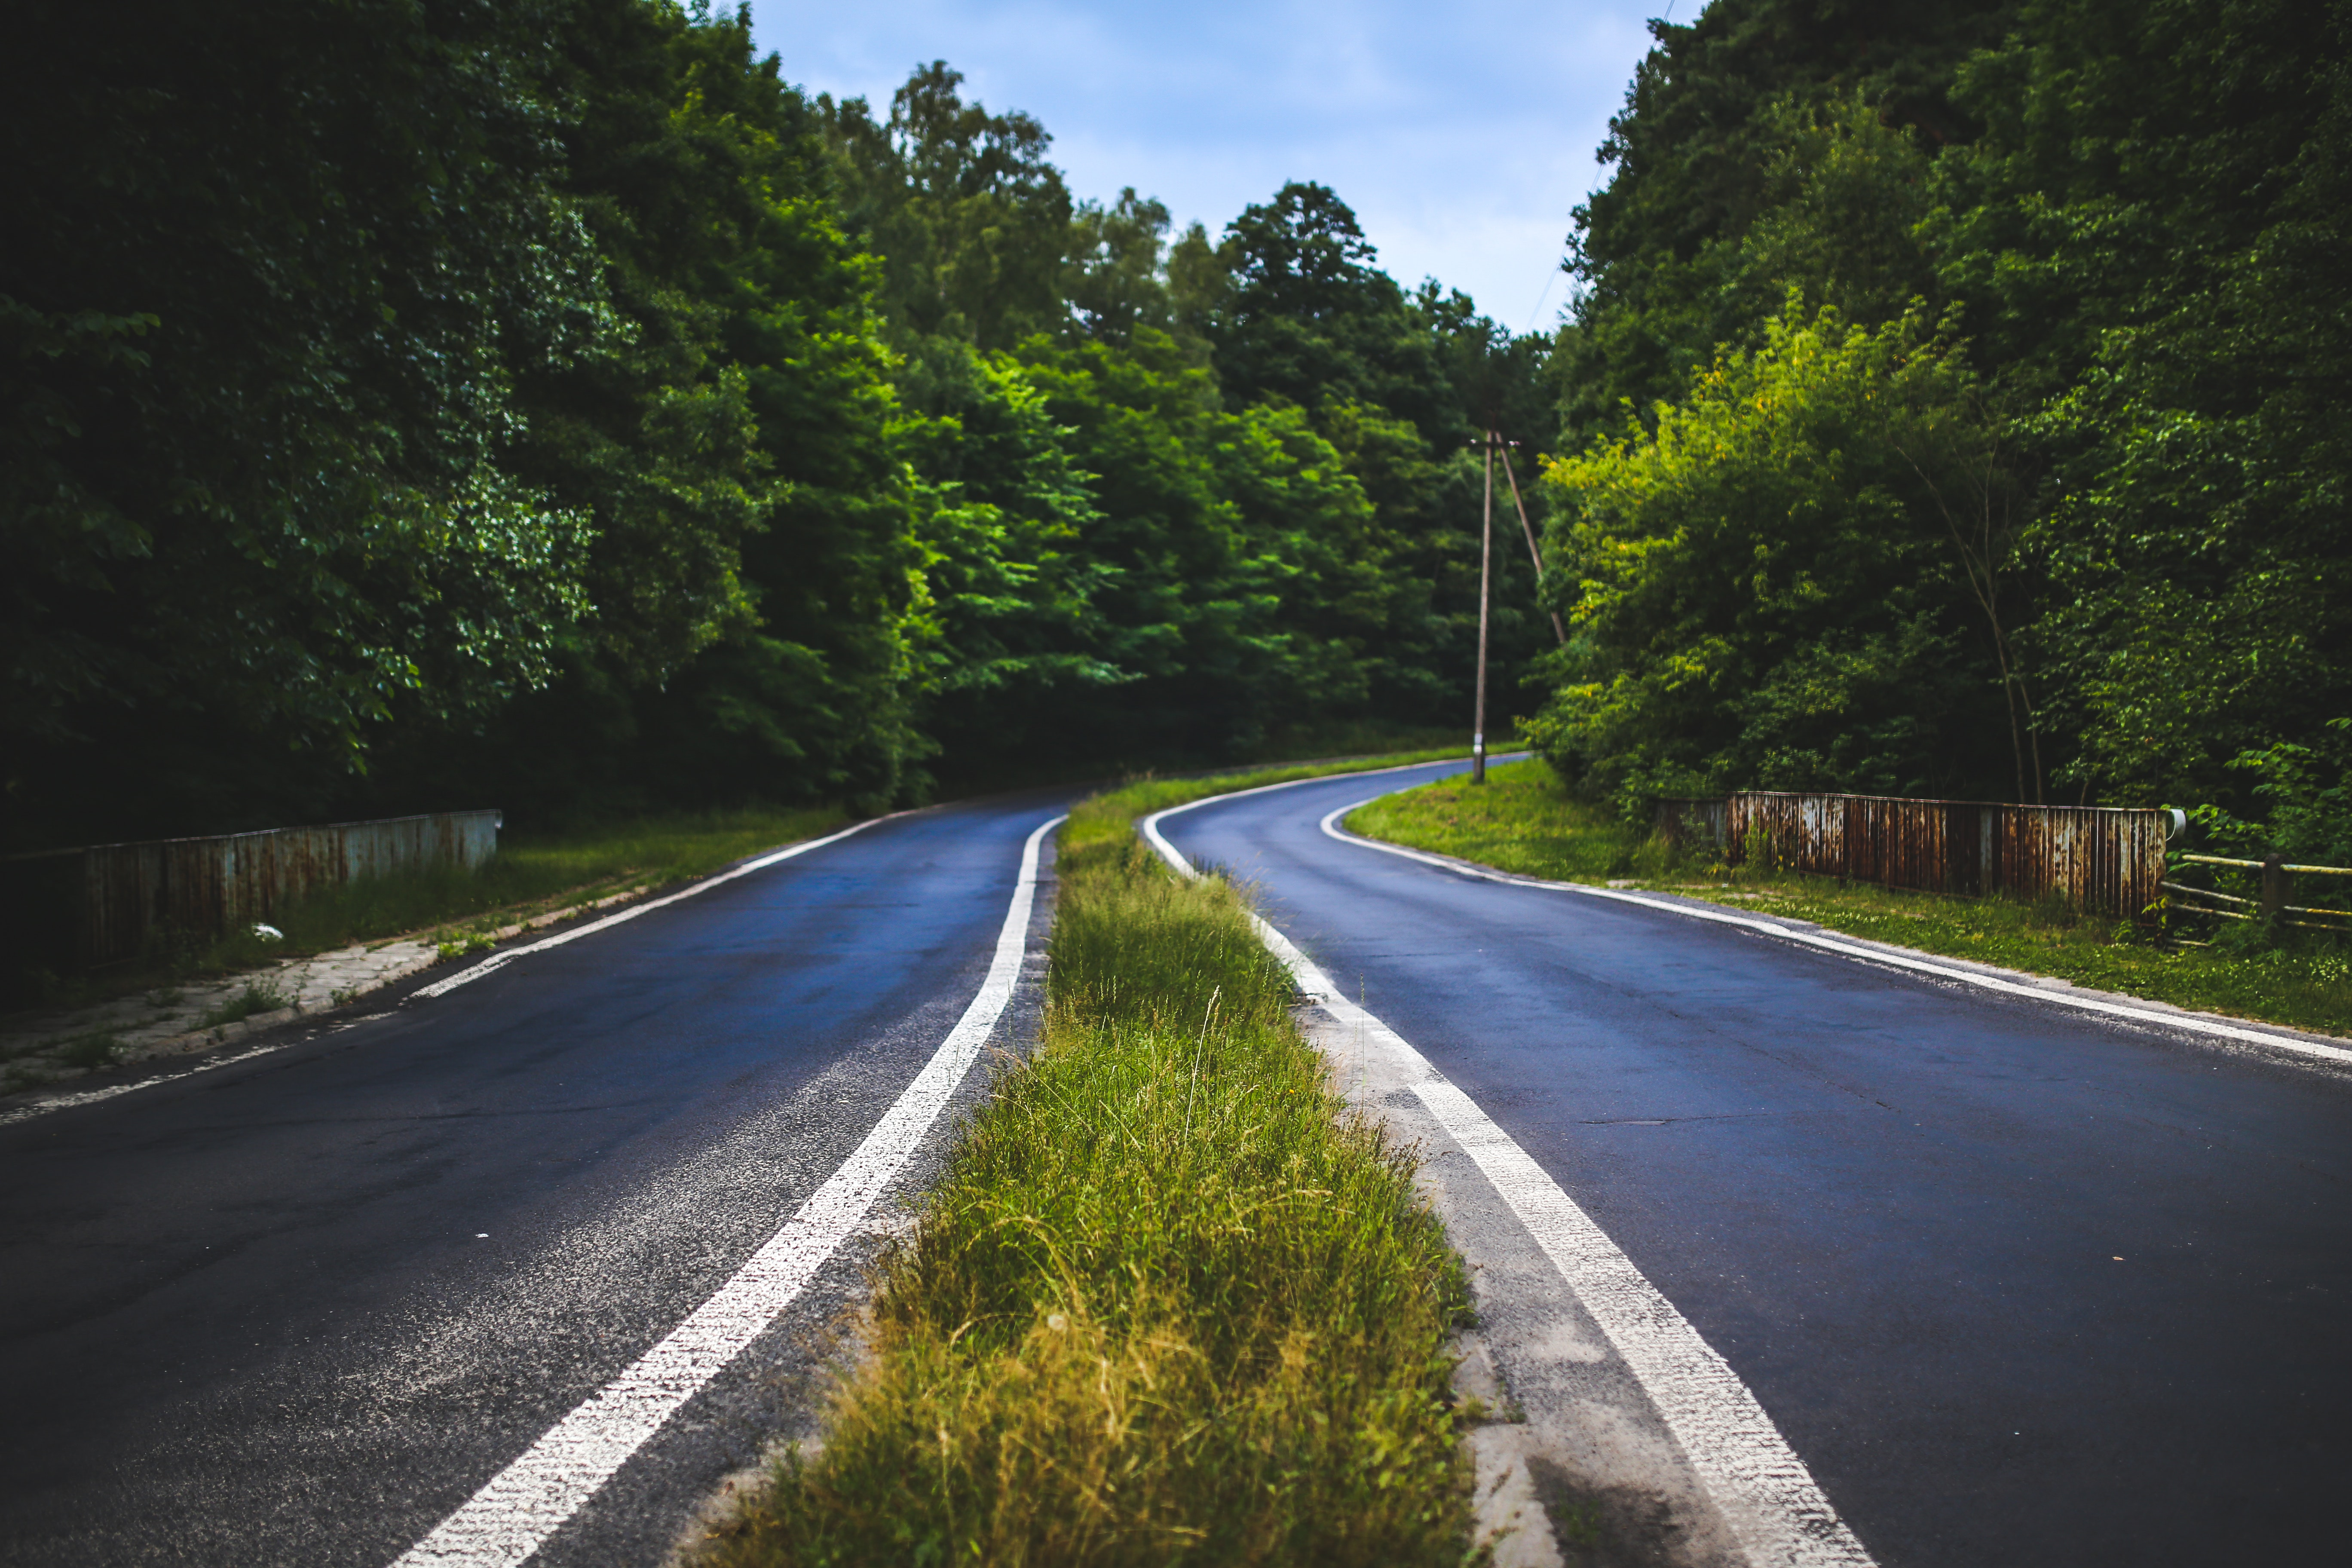 The forest road, Straight, Rural, Route, Transportation system, HQ Photo